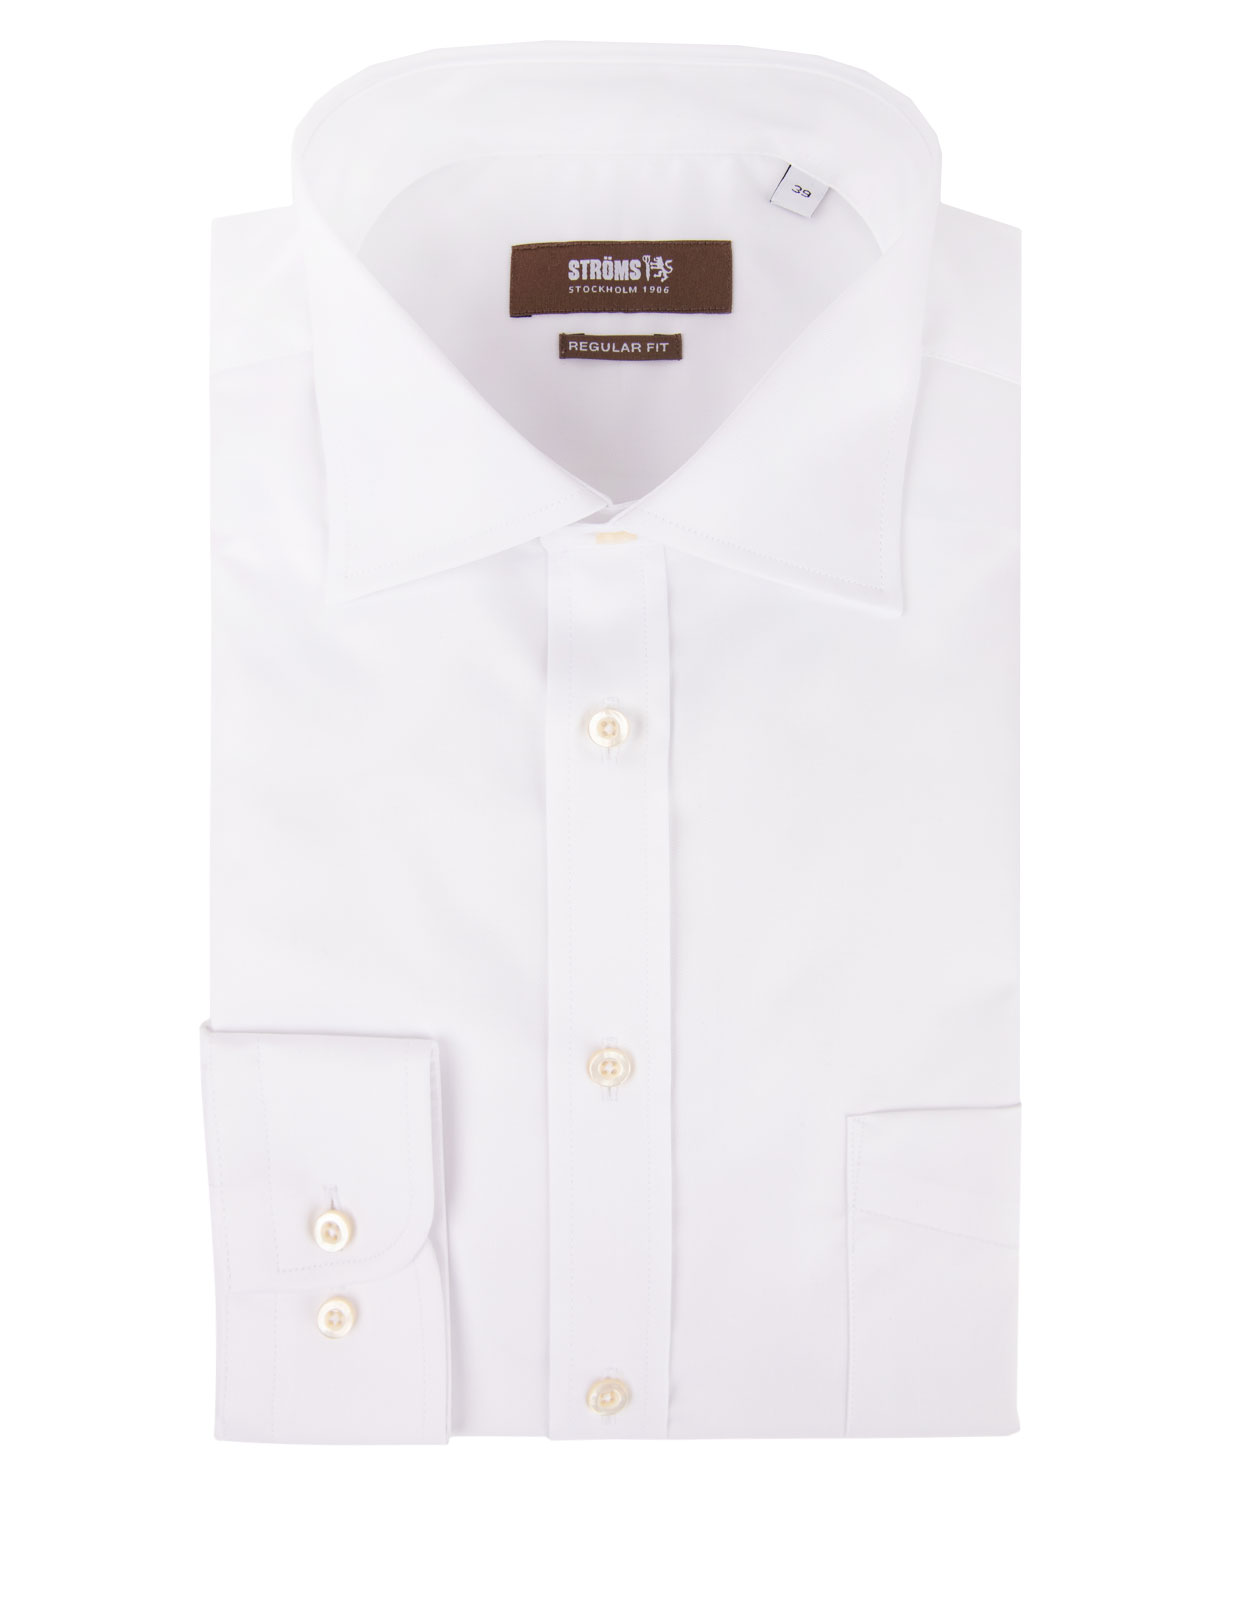 Regular Fit Cotton Shirt White